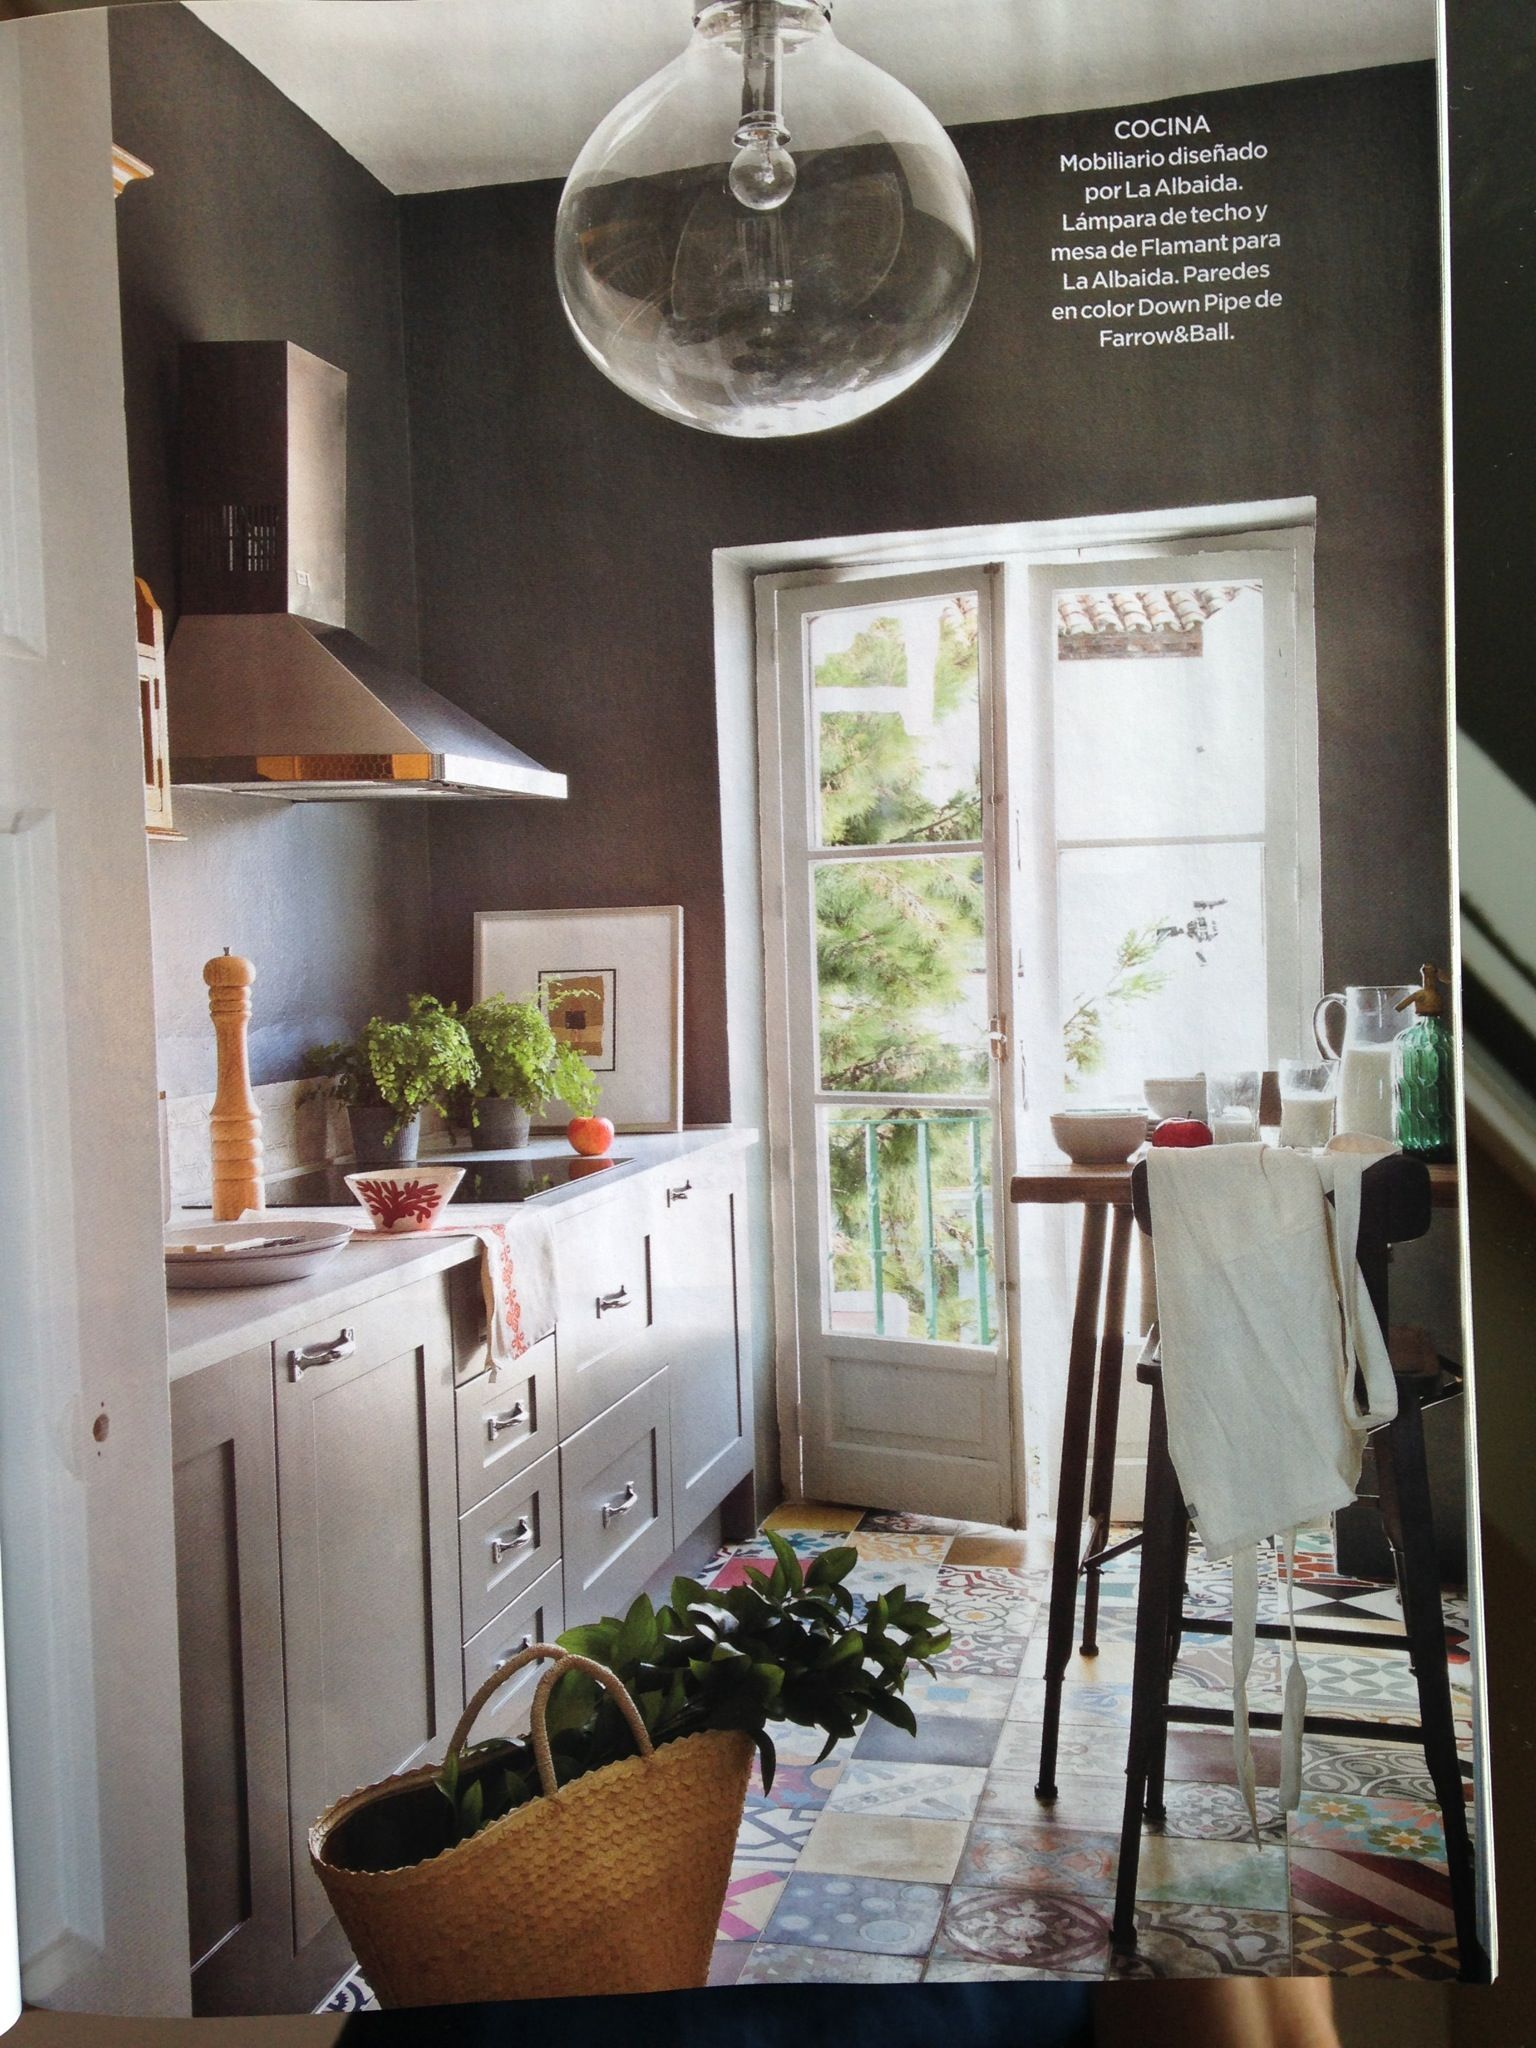 Kitchen Furniture Painted With Plummet, Walls With Down Pipe Hidraulic